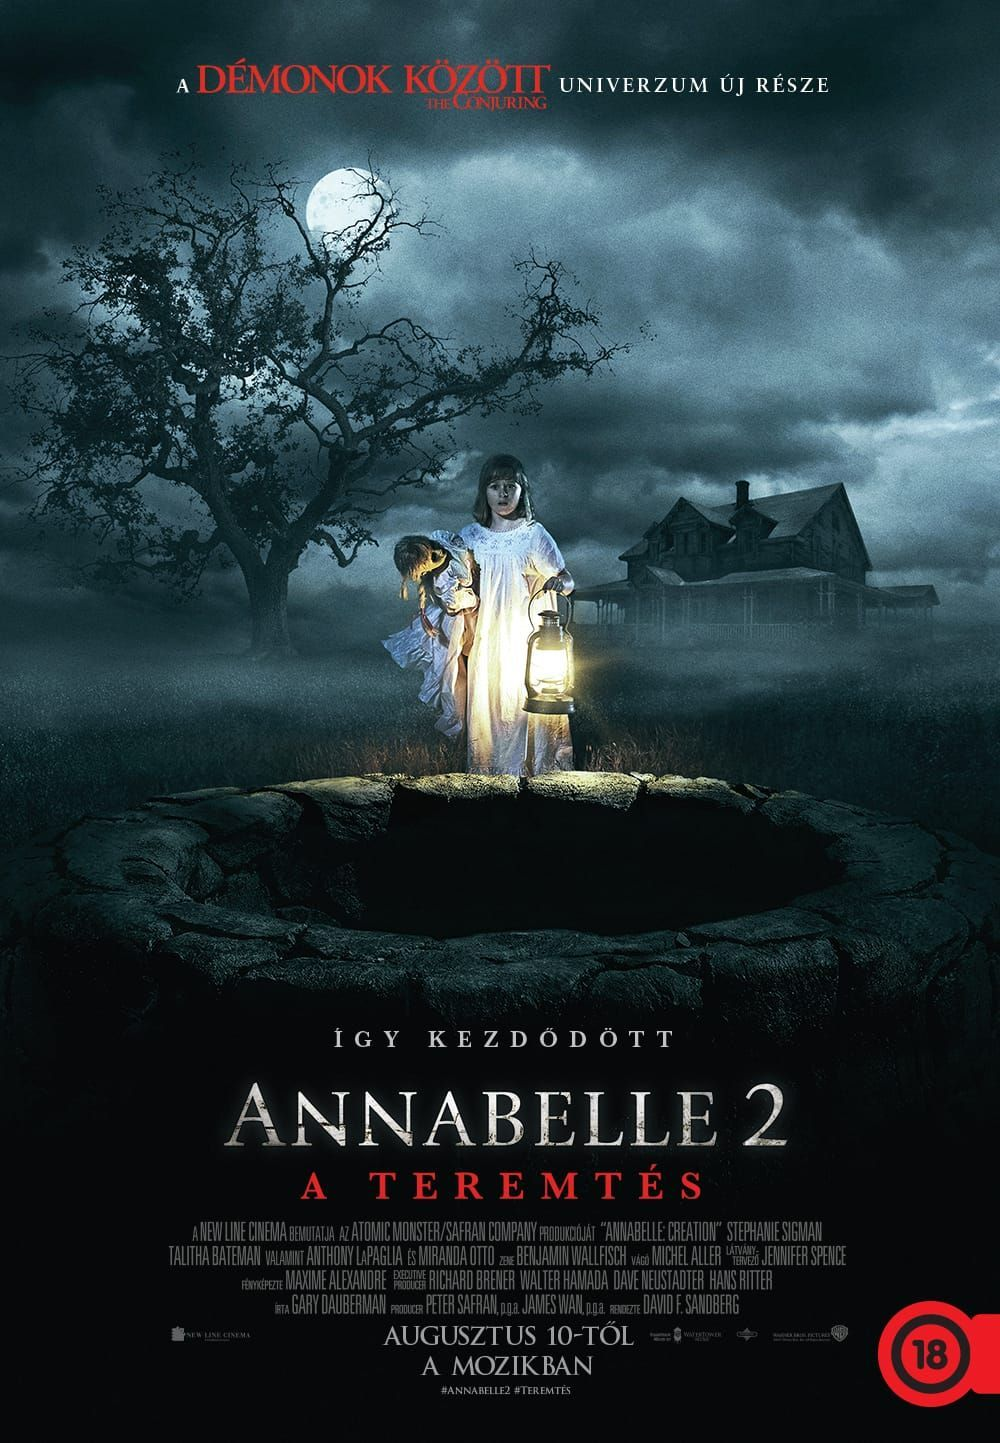 Annabelle 2. - A teremtés (Annabelle 2: The Creation)